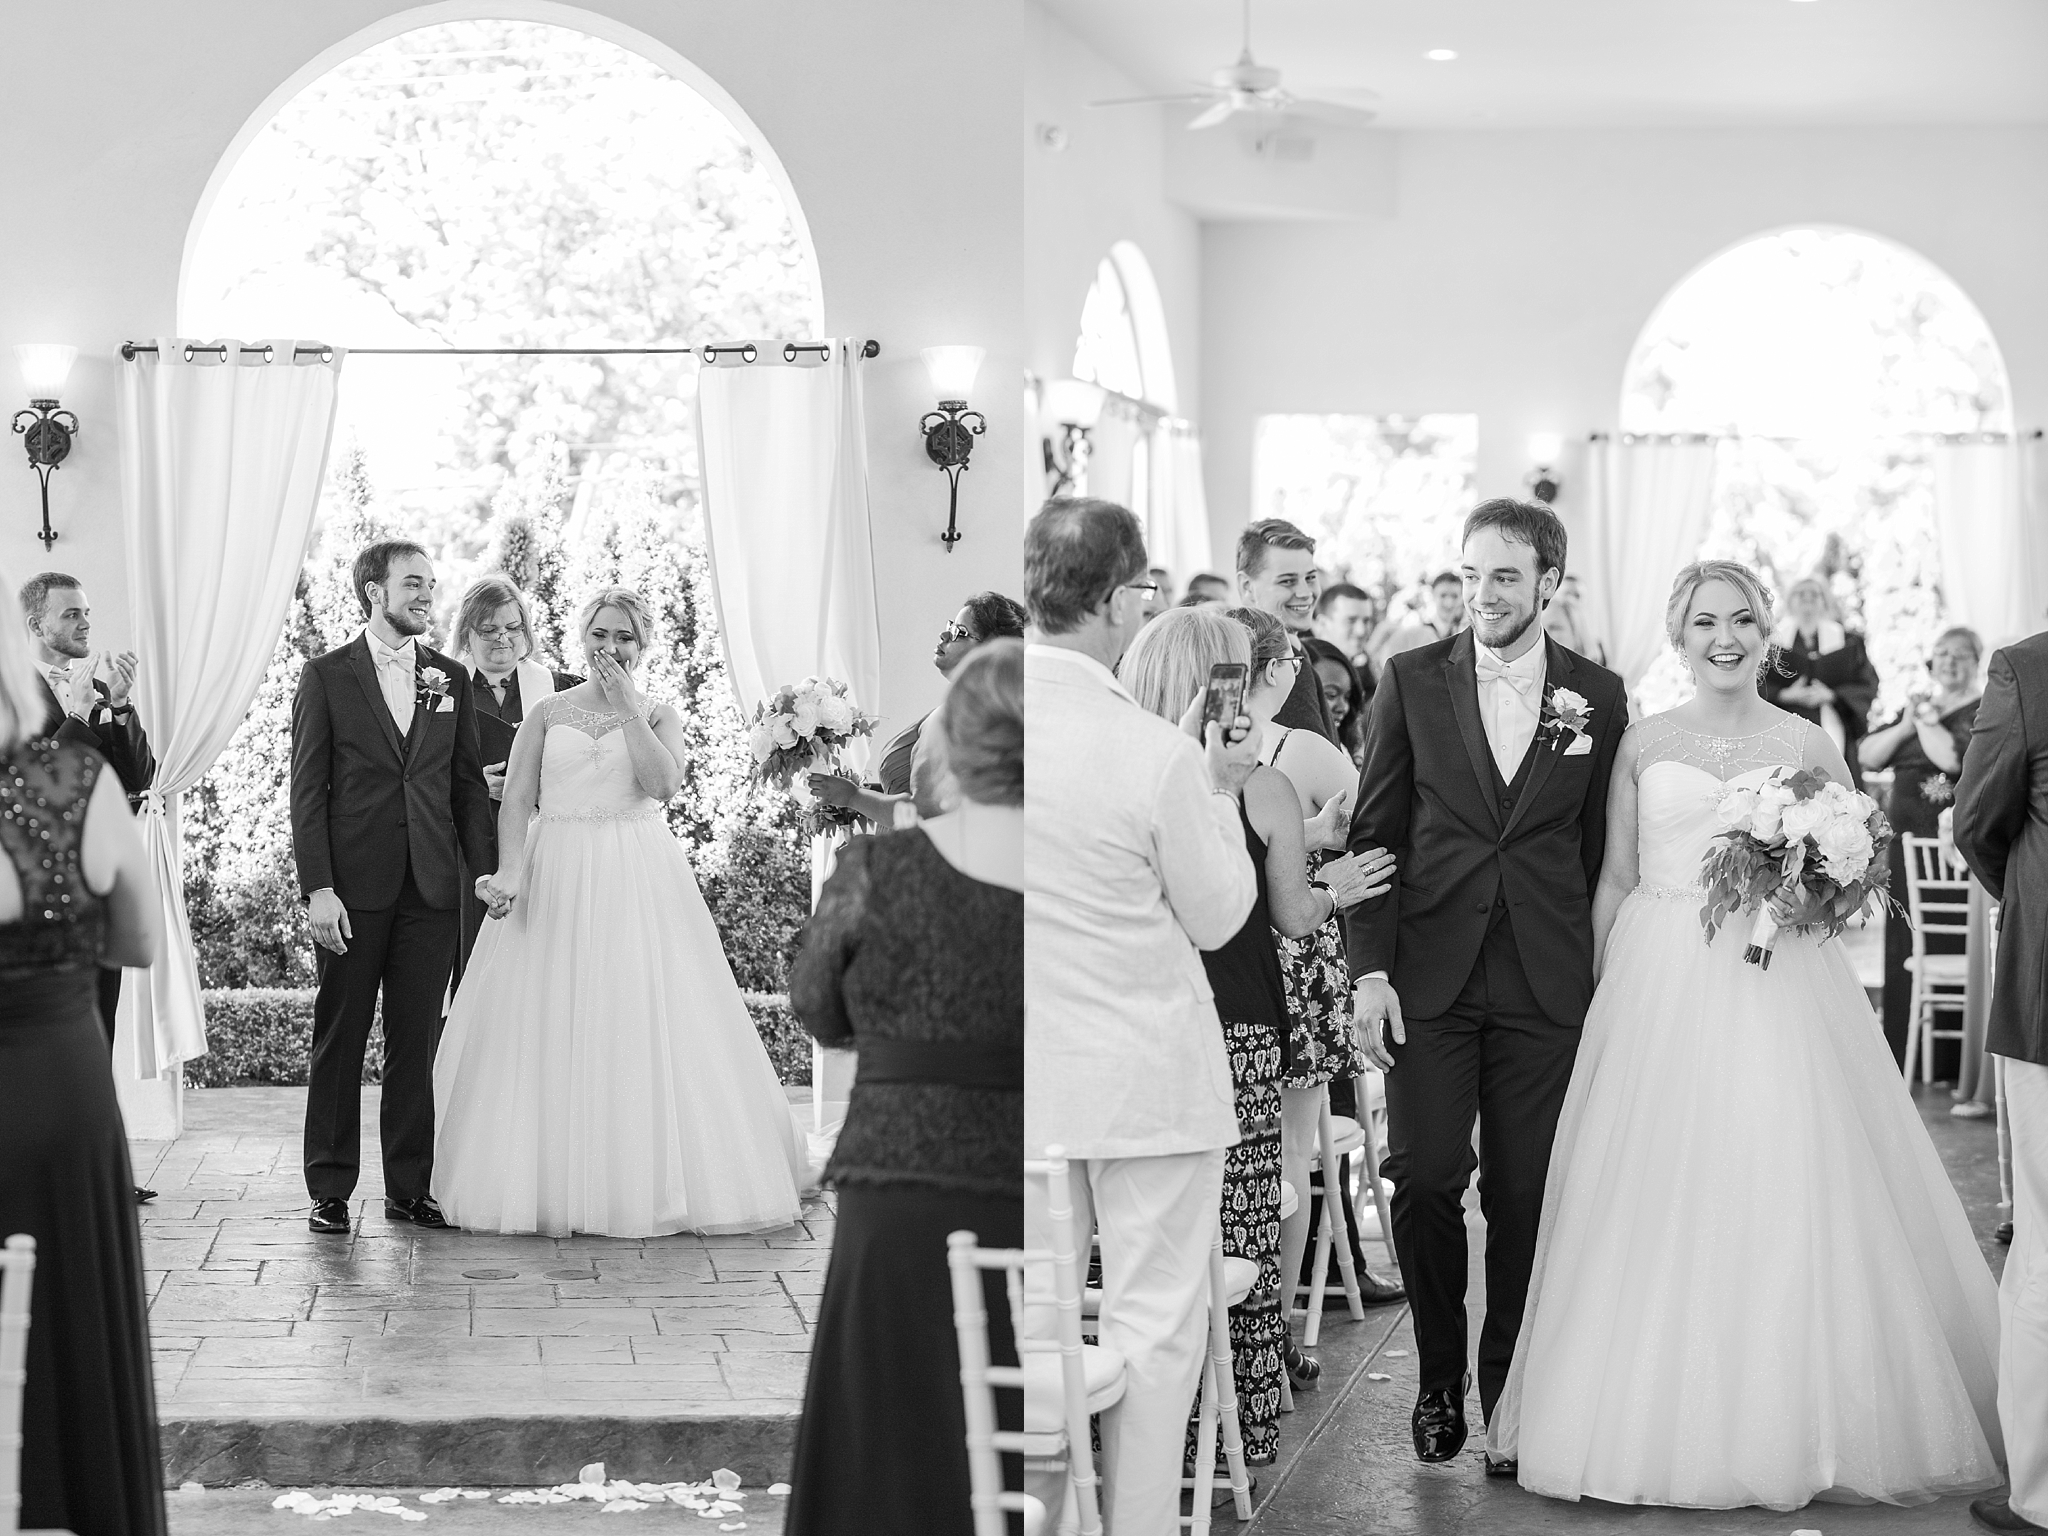 romantic-artful-candid-wedding-photos-in-detroit-lansing-ann-arbor-northern-michigan-and-chicago-by-courtney-carolyn-photography_0041.jpg